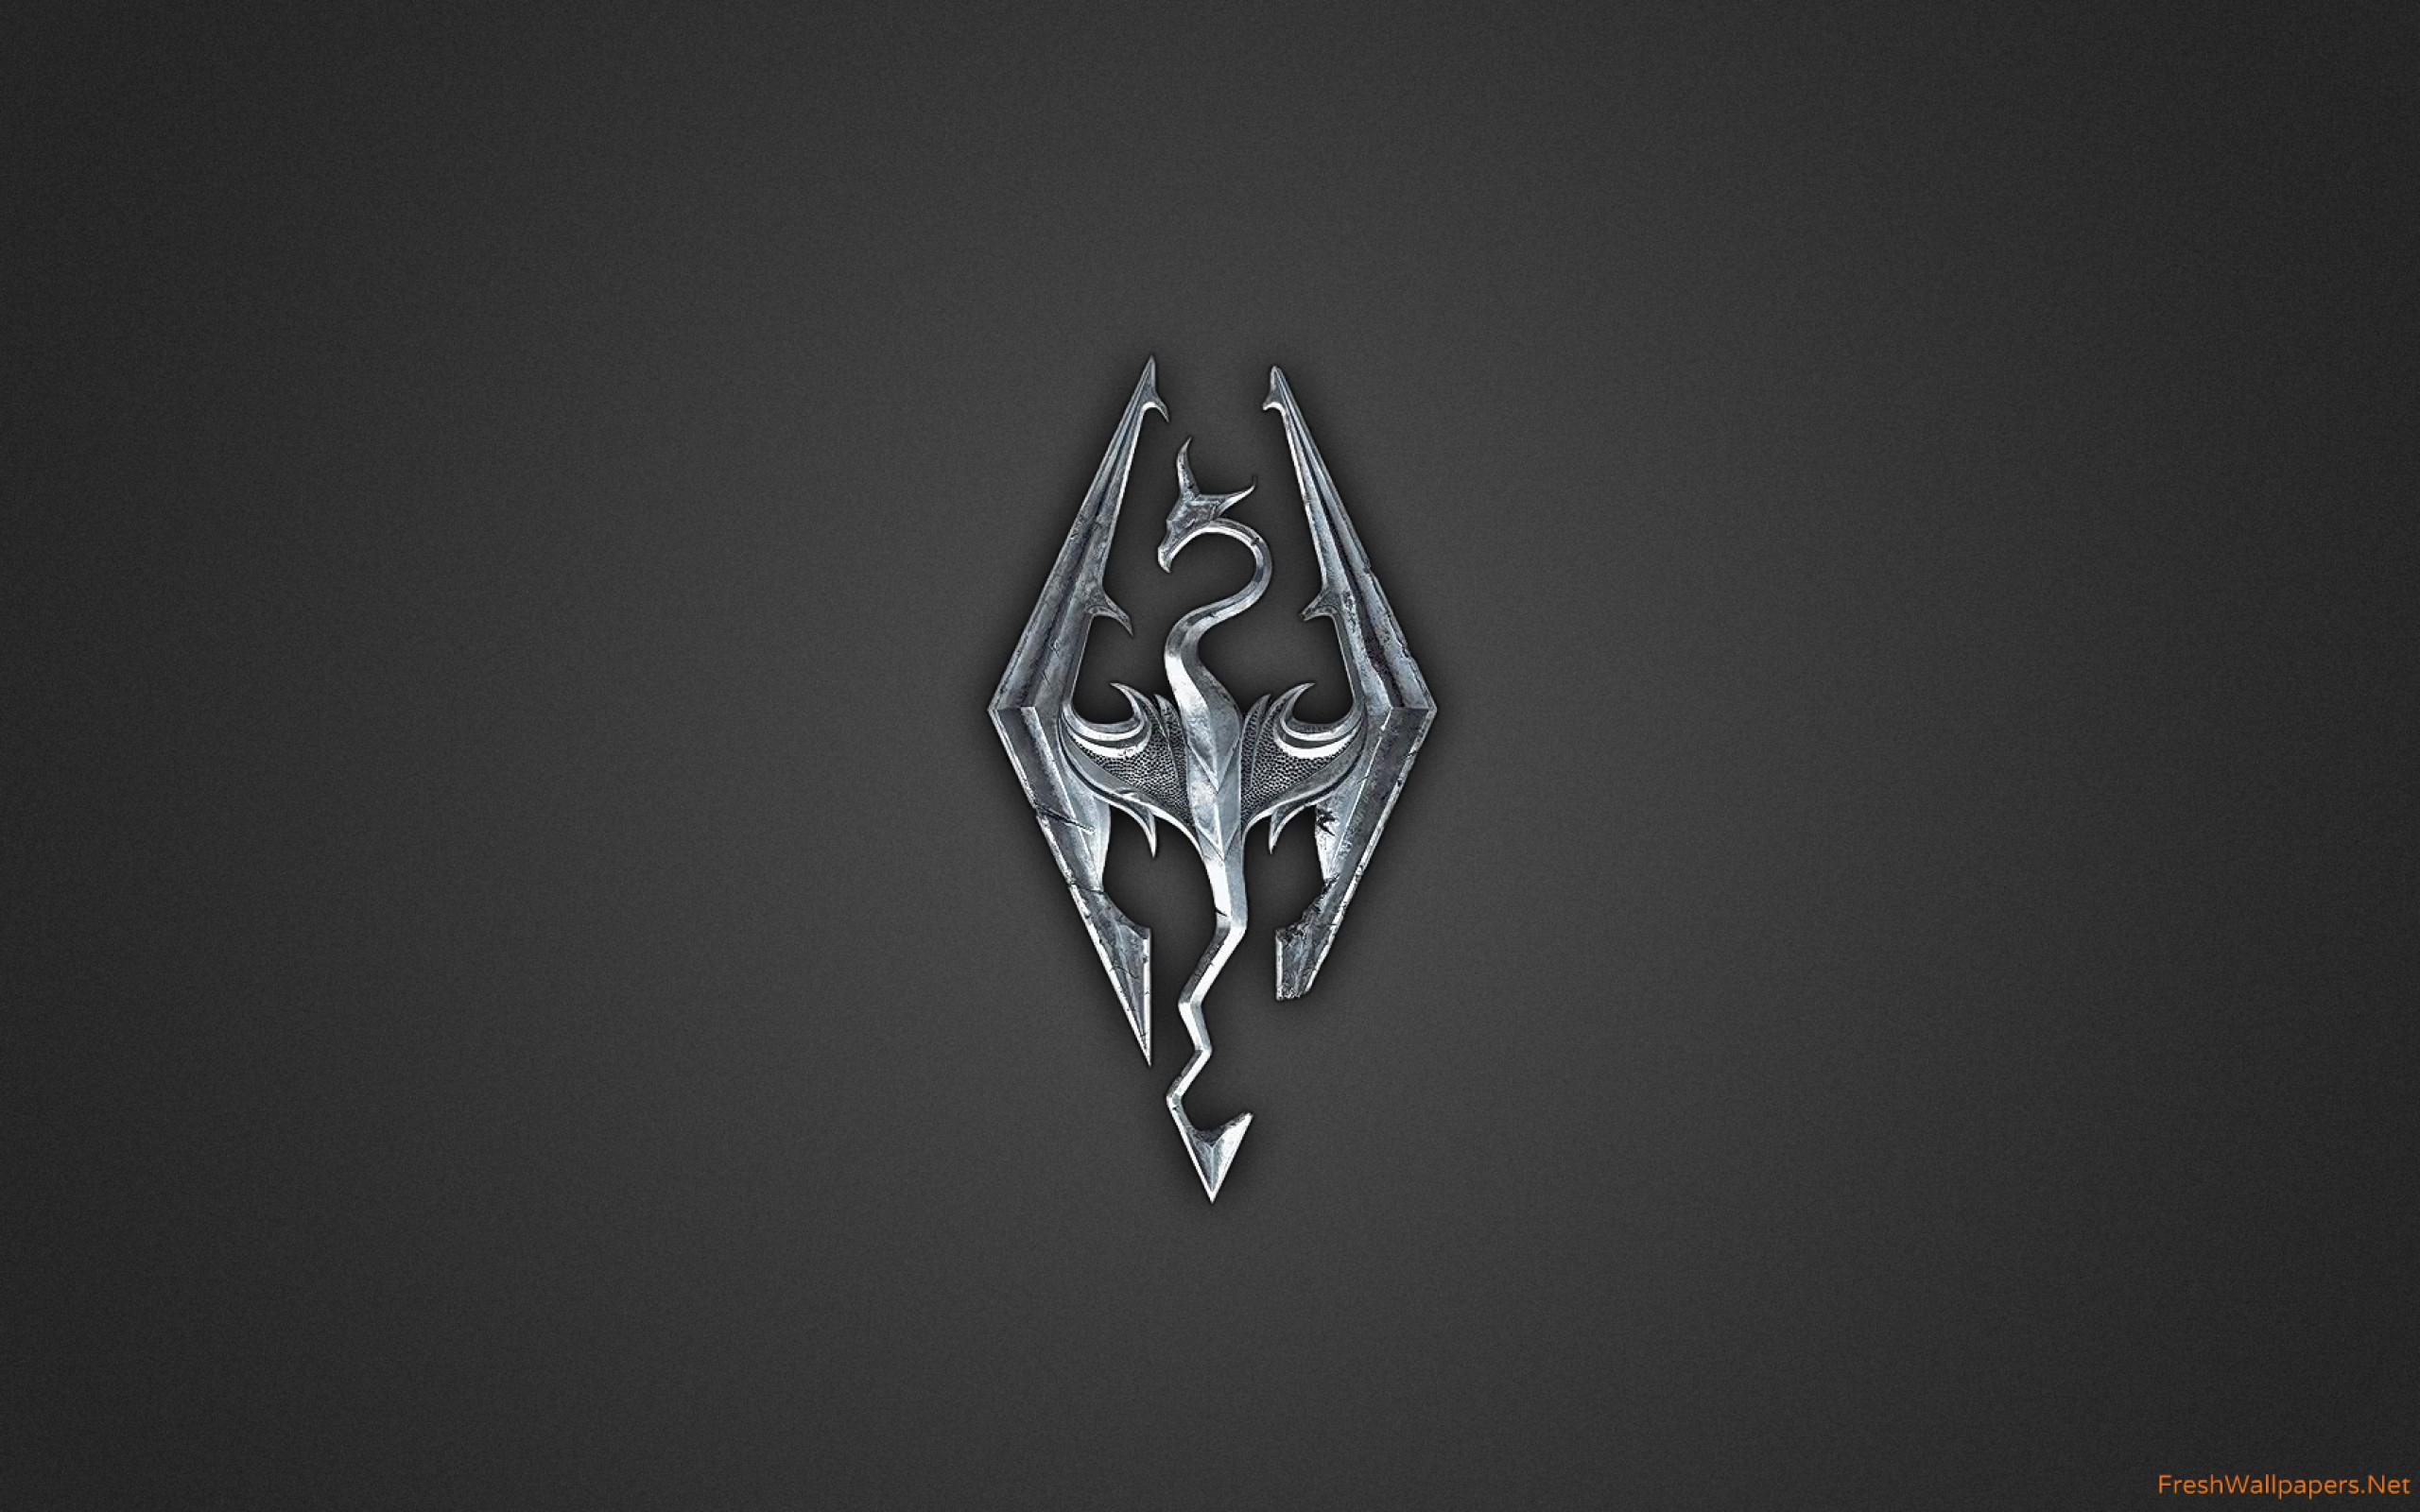 Skyrim Logo wallpapers.